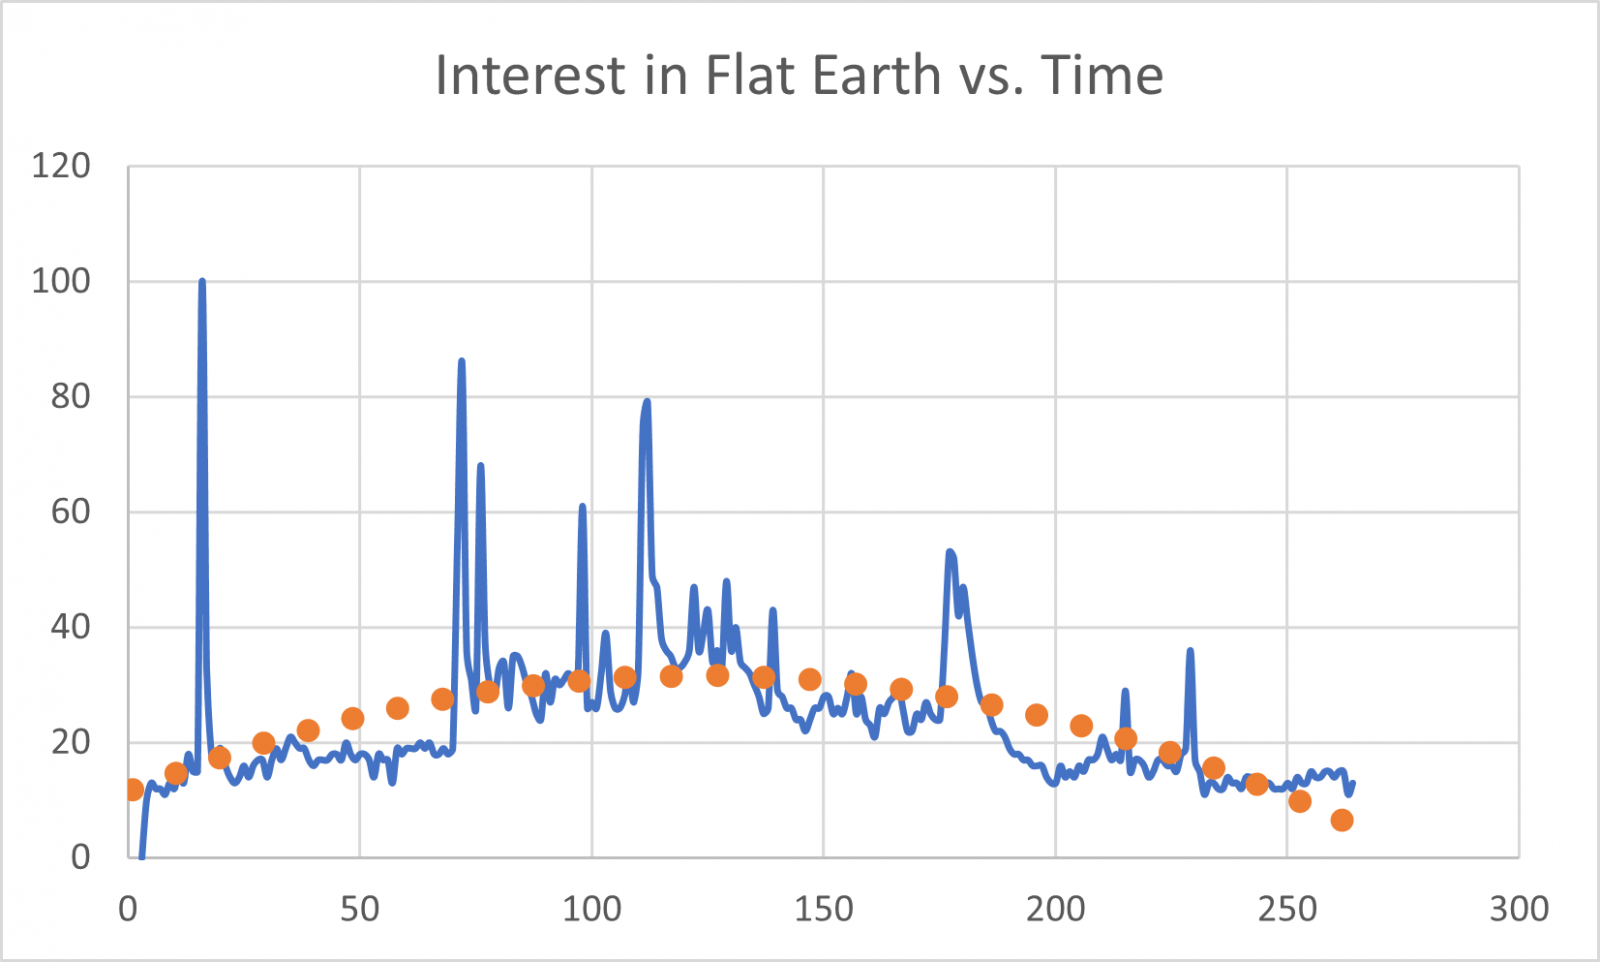 FlatEarthInterest.png